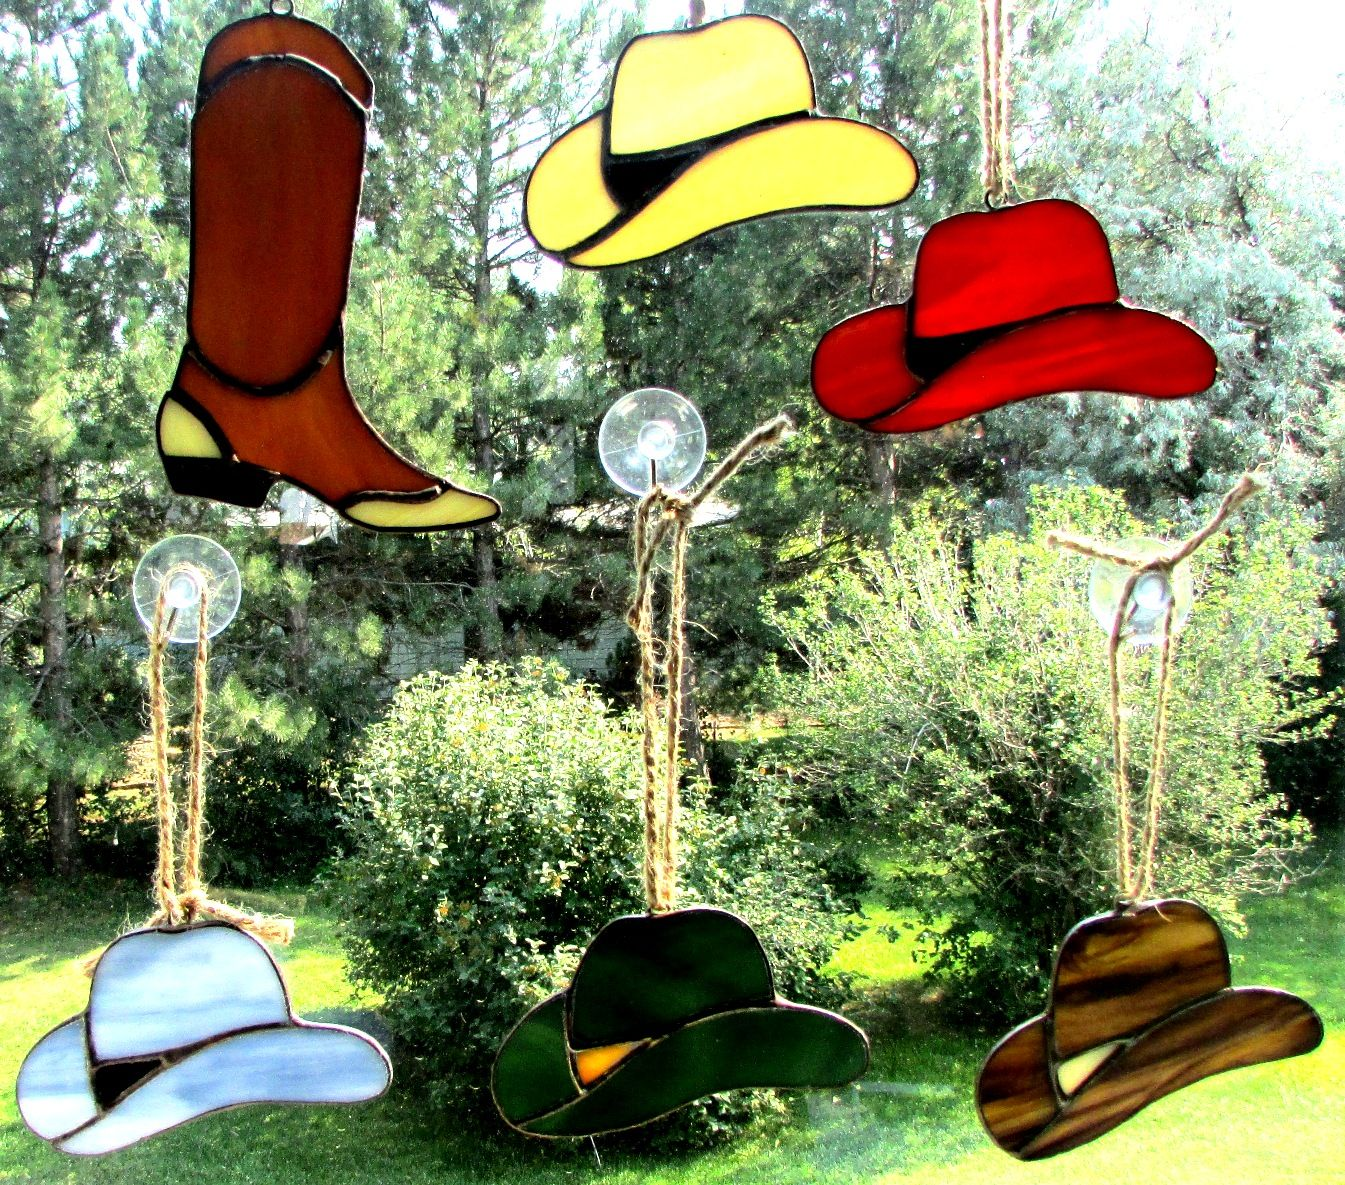 Cowboy Hats Perfect As Suncatcher Ornament Or Hanging From Your Rearview Mirror Www Swankyglass Com Stained Glass Patterns Ornament Decor Glass Art